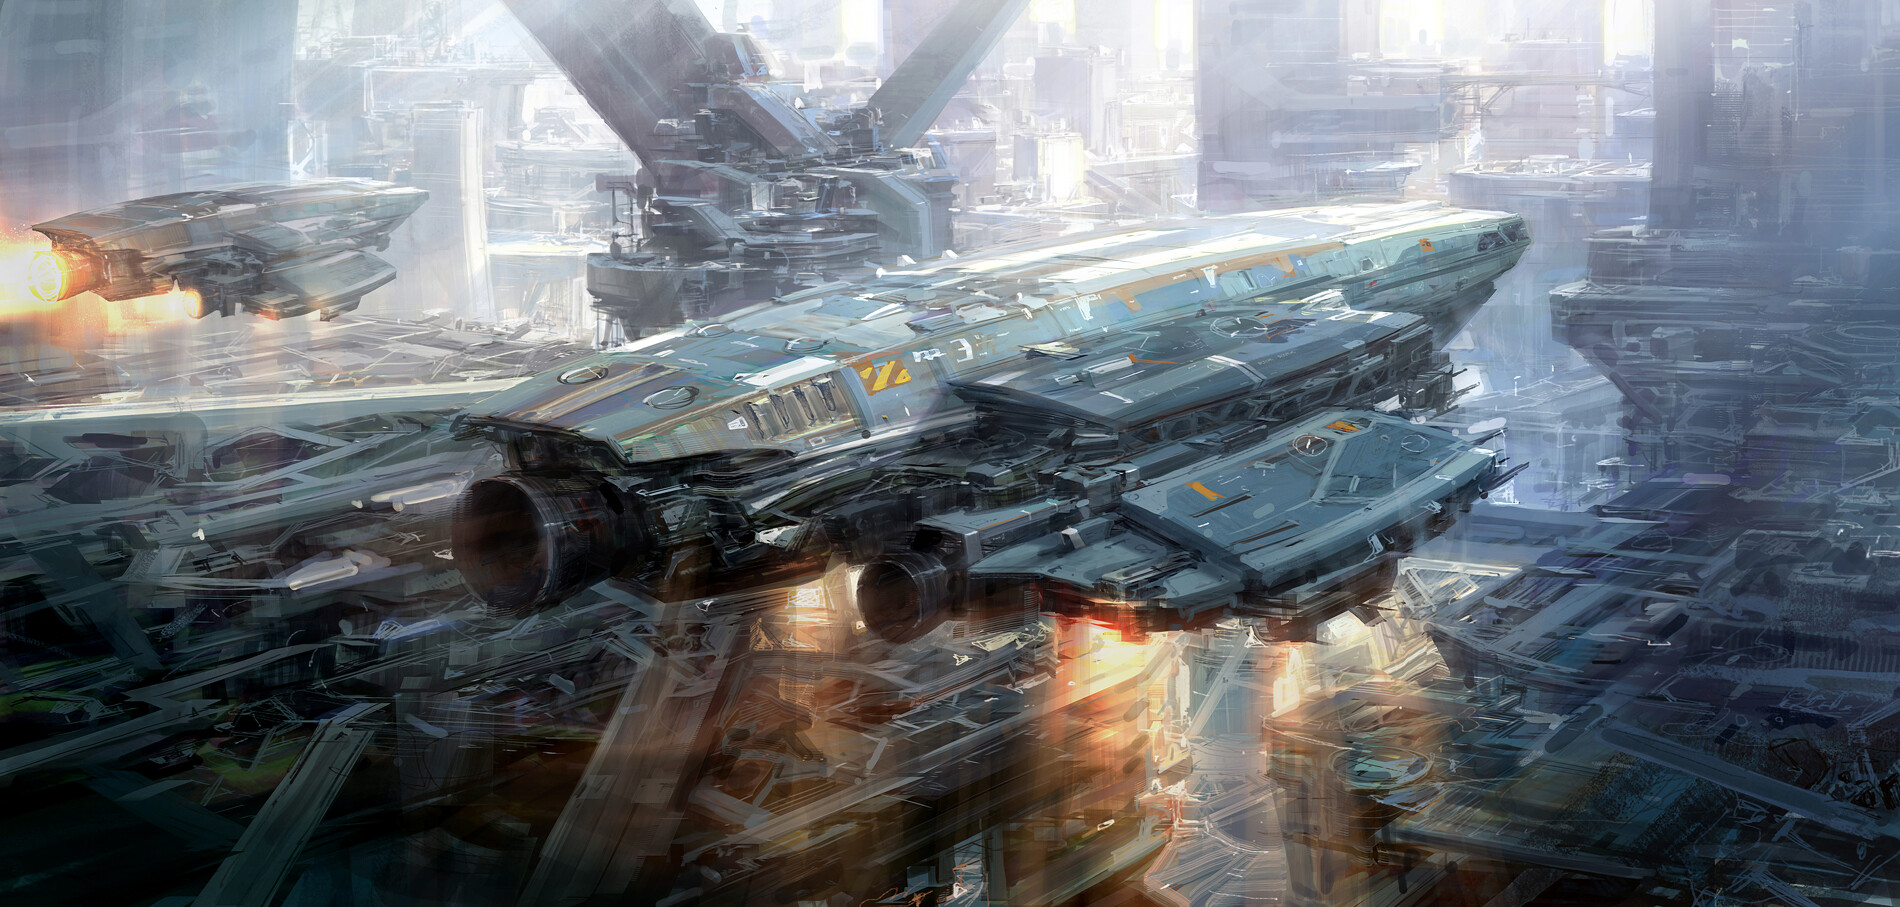 The Sci-Fi Art of Jae Cheol Park aka Paperblue